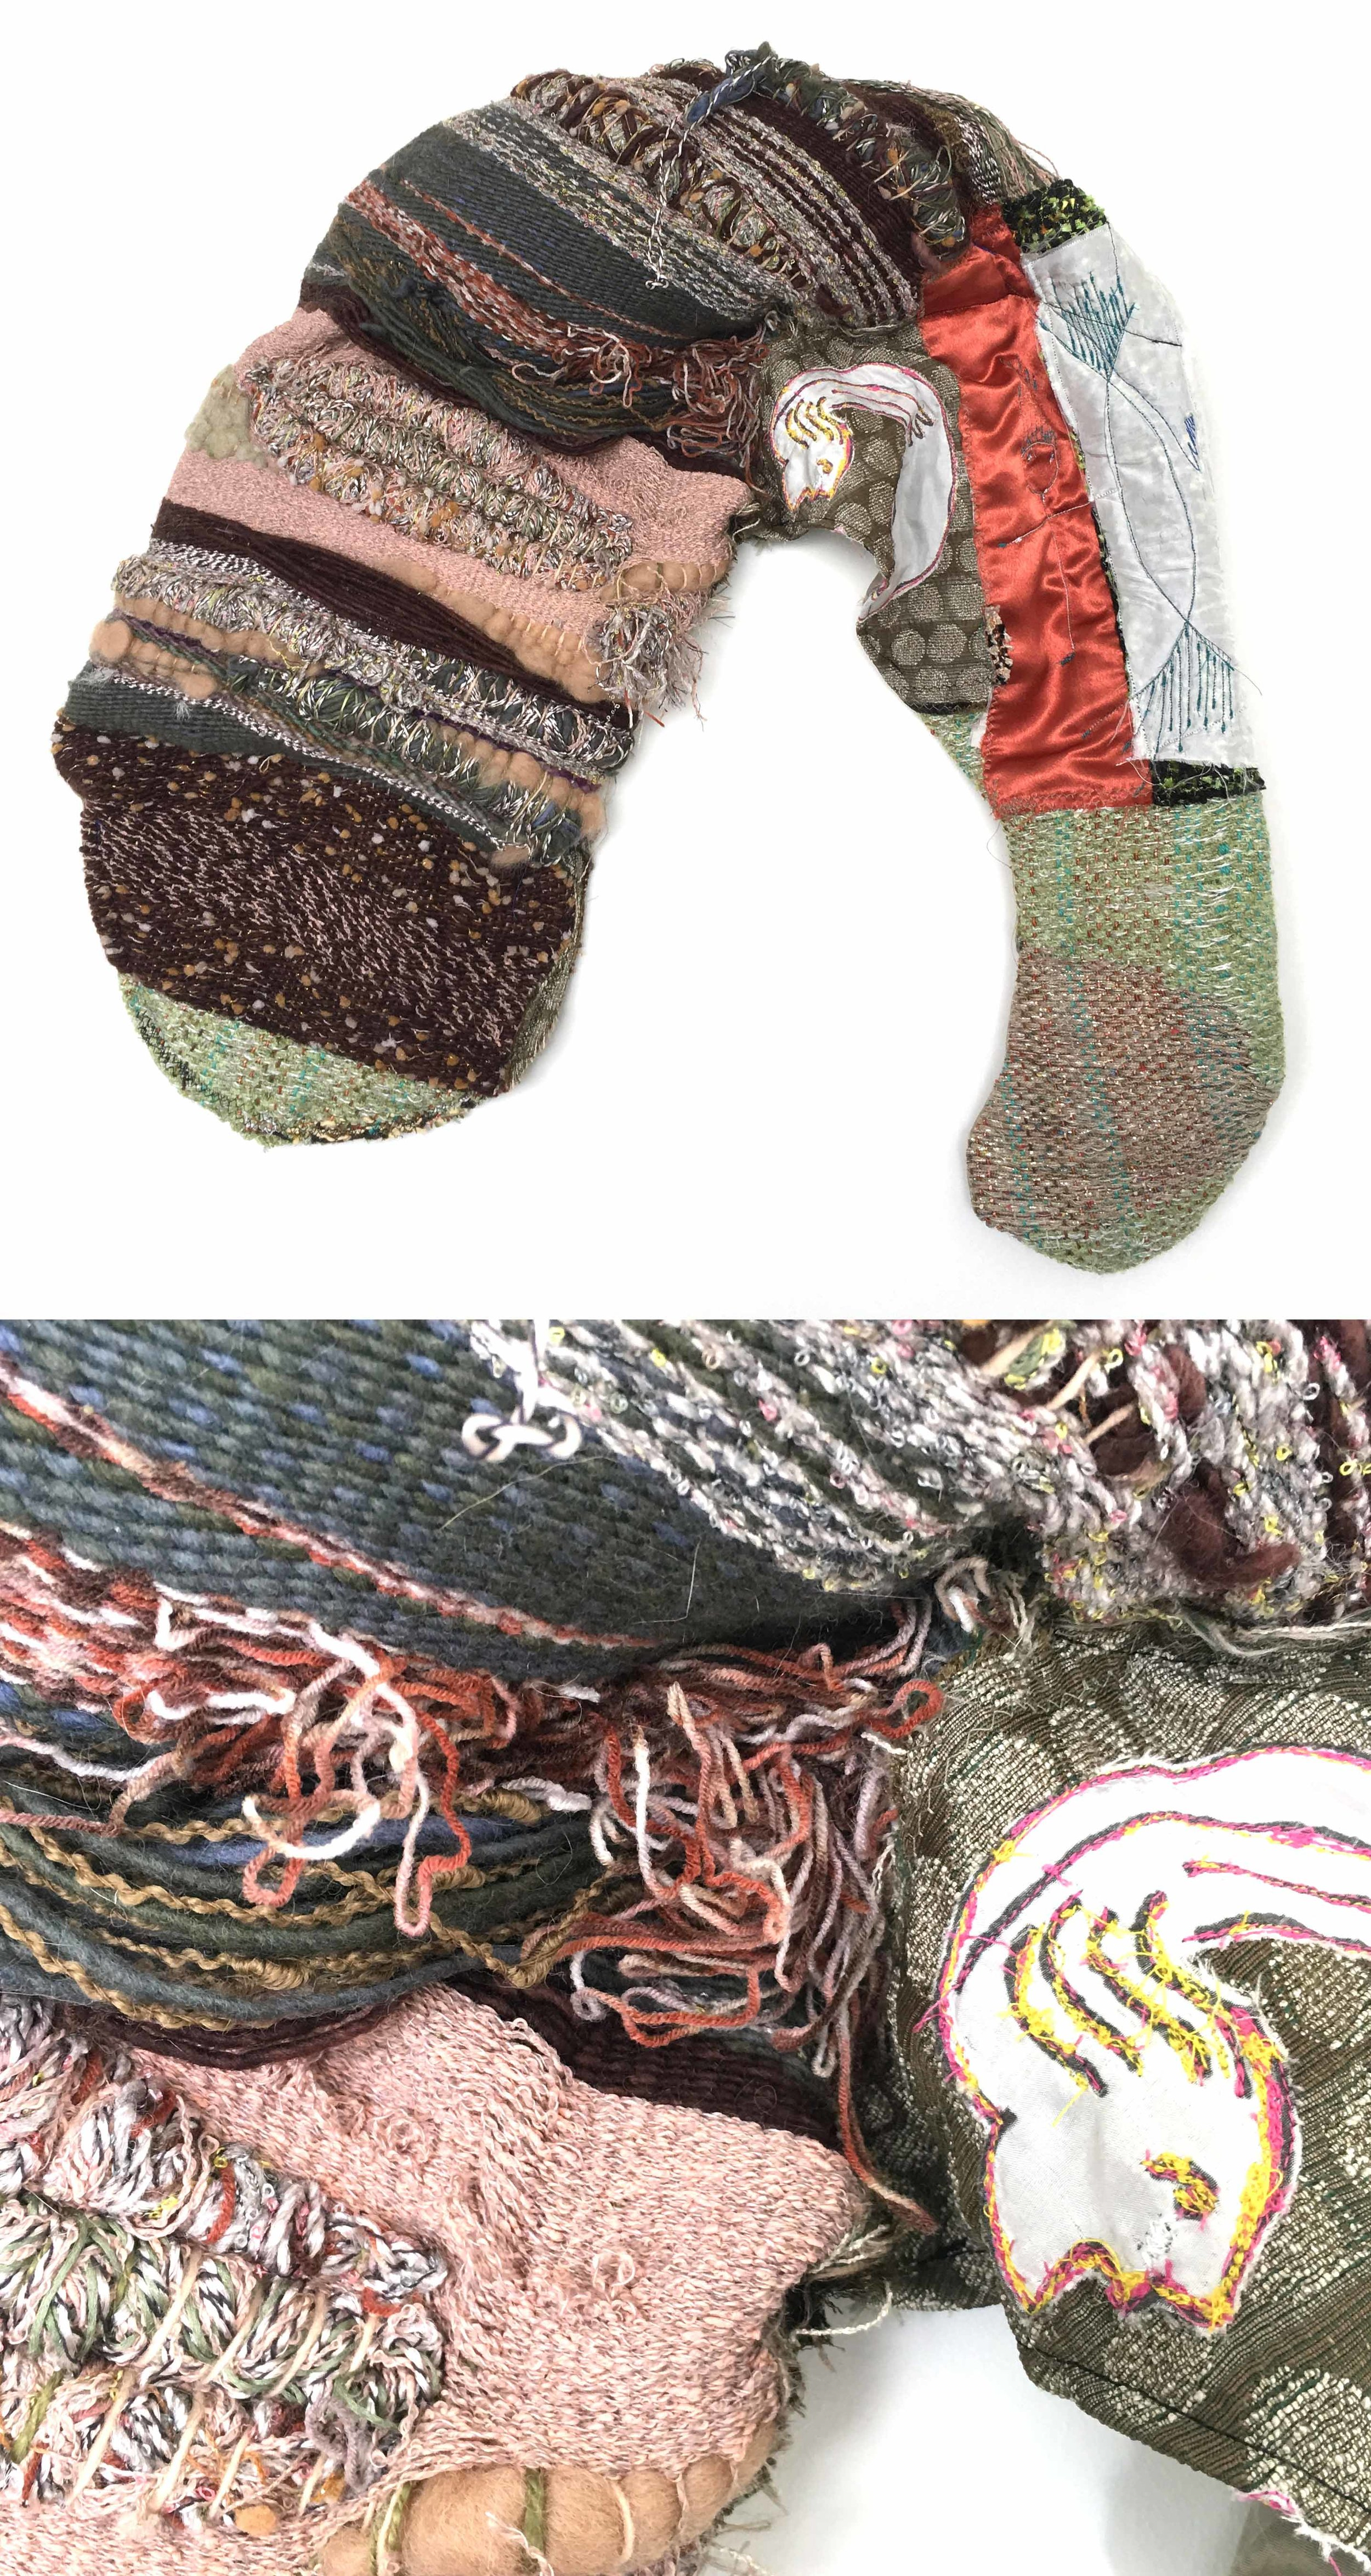 """Eat My Feet (1)  h: 24"""" x w: 27"""" hand-woven and machine-made fabric, embroidery, inkjet prints, fleece, wire 2017"""